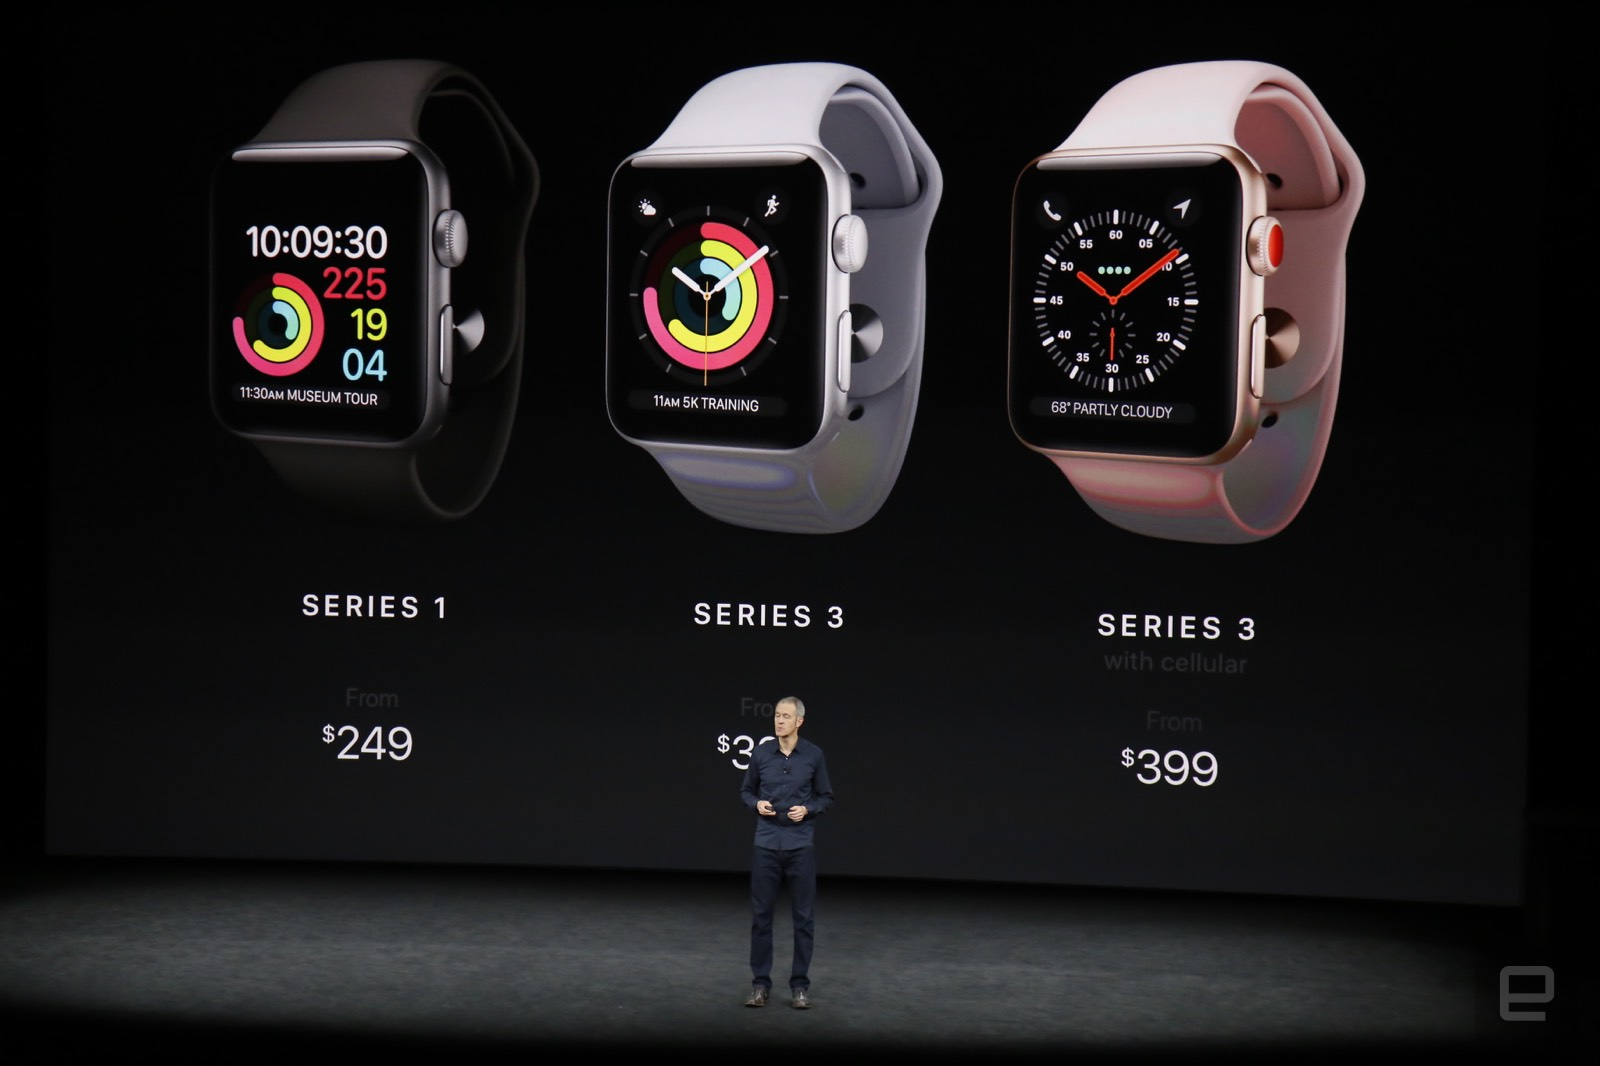 Apple Watch Series 3 Gains Lte For 399